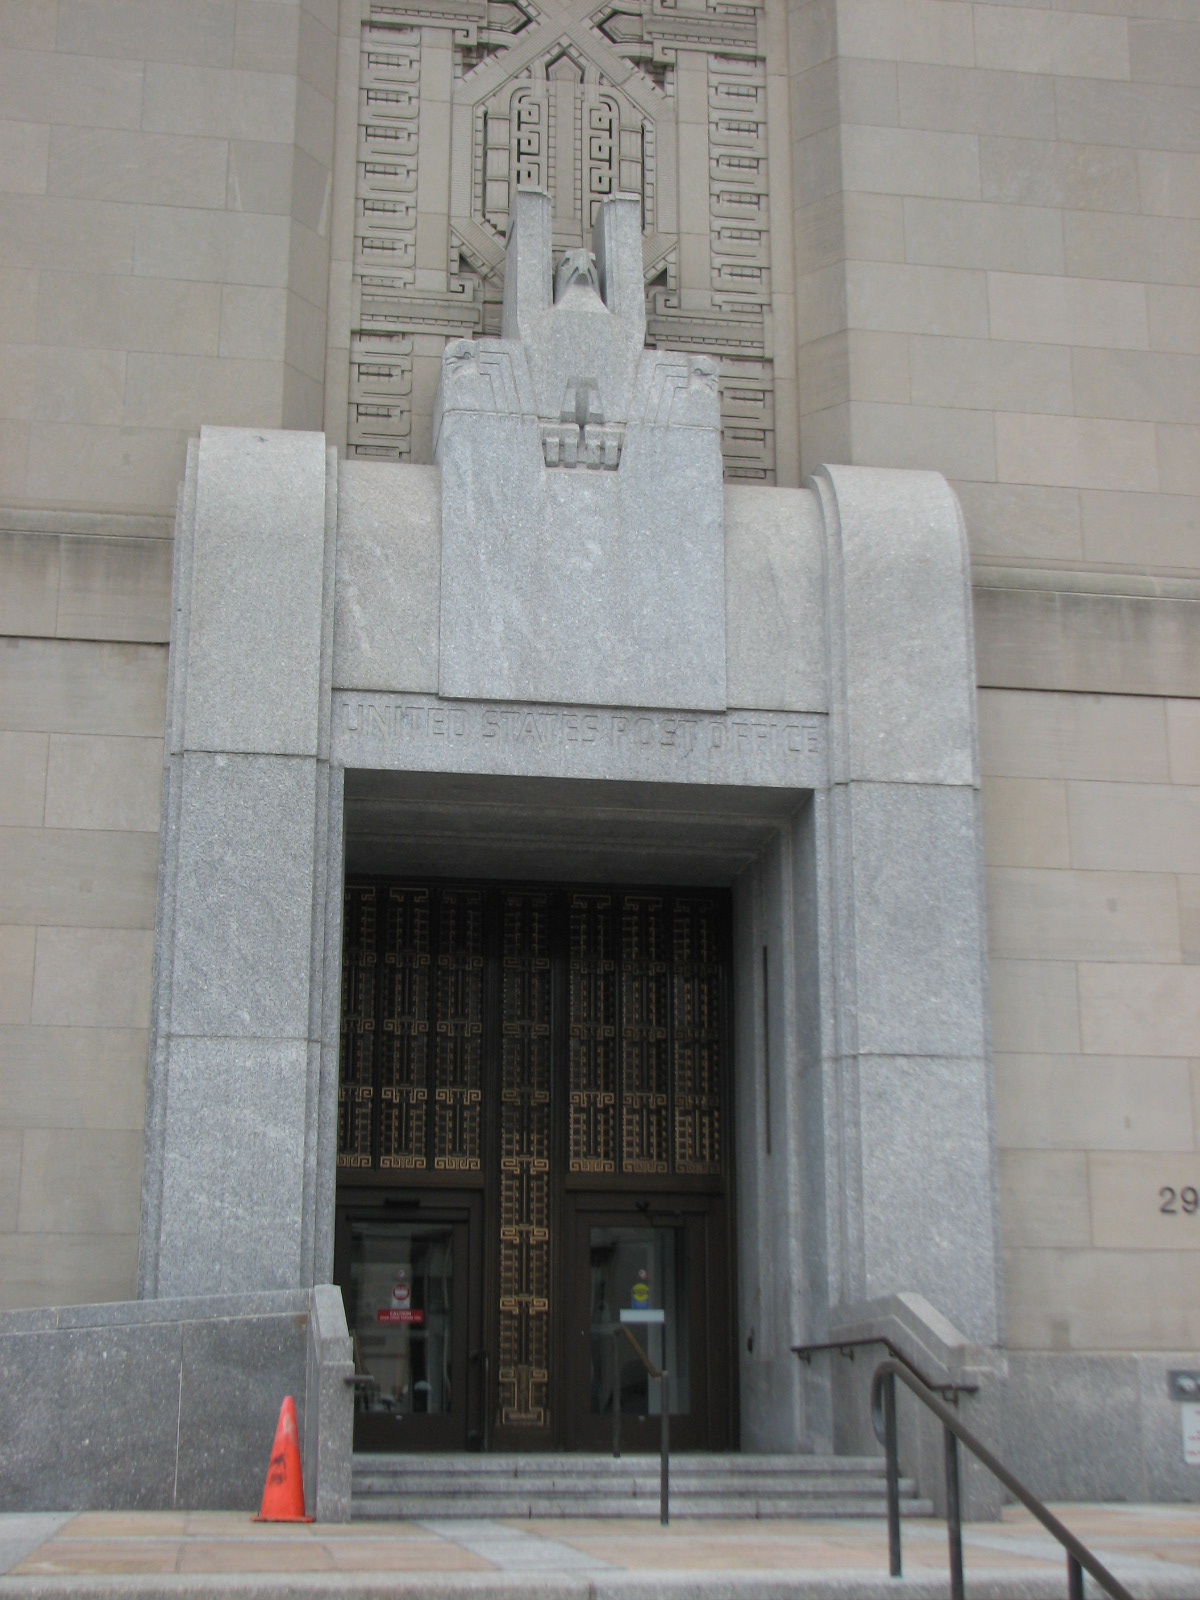 The north entrance to the building.